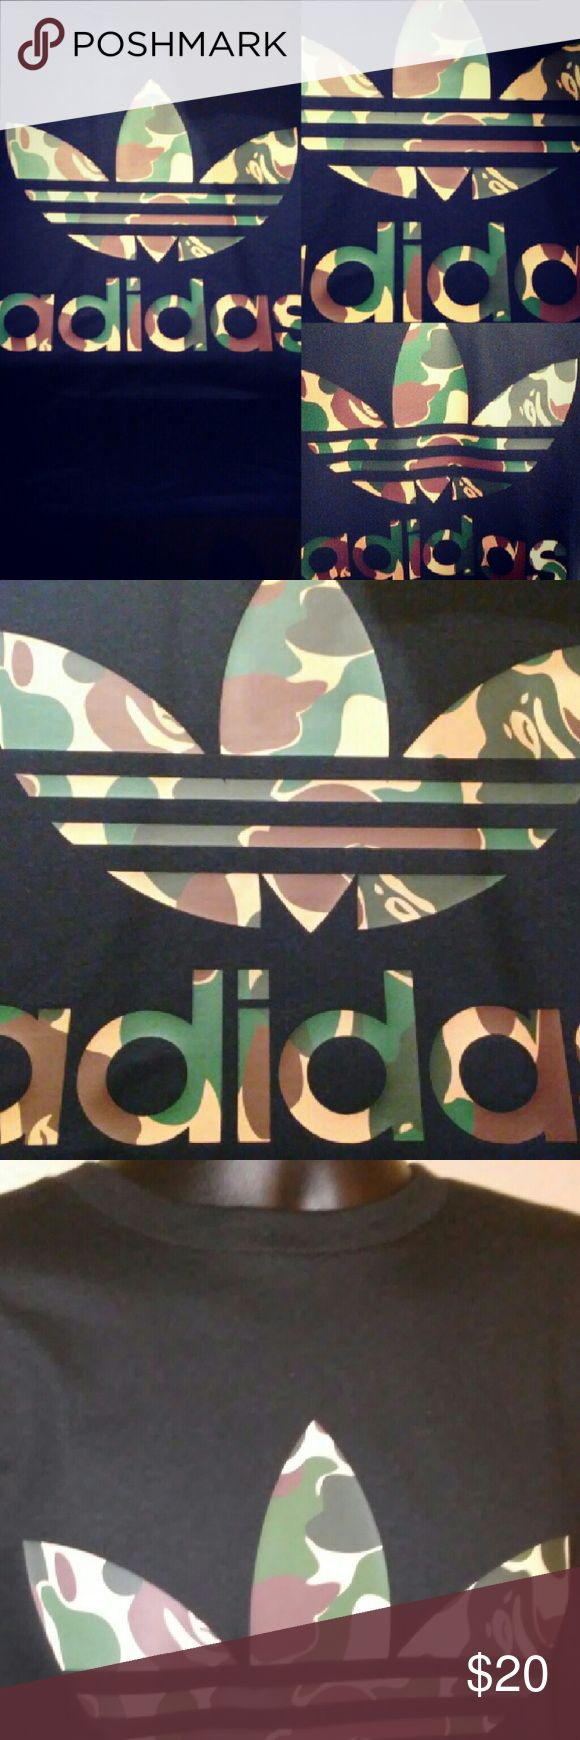 Custom adidas t shirt Size mens  New without tags Custom 100% cotton No shipping sundays   Tags: bape, supreme, ovo, custom tees, adidas, nike, custom sneakers, camo, bape camo, anvil Shirts Tees - Short Sleeve